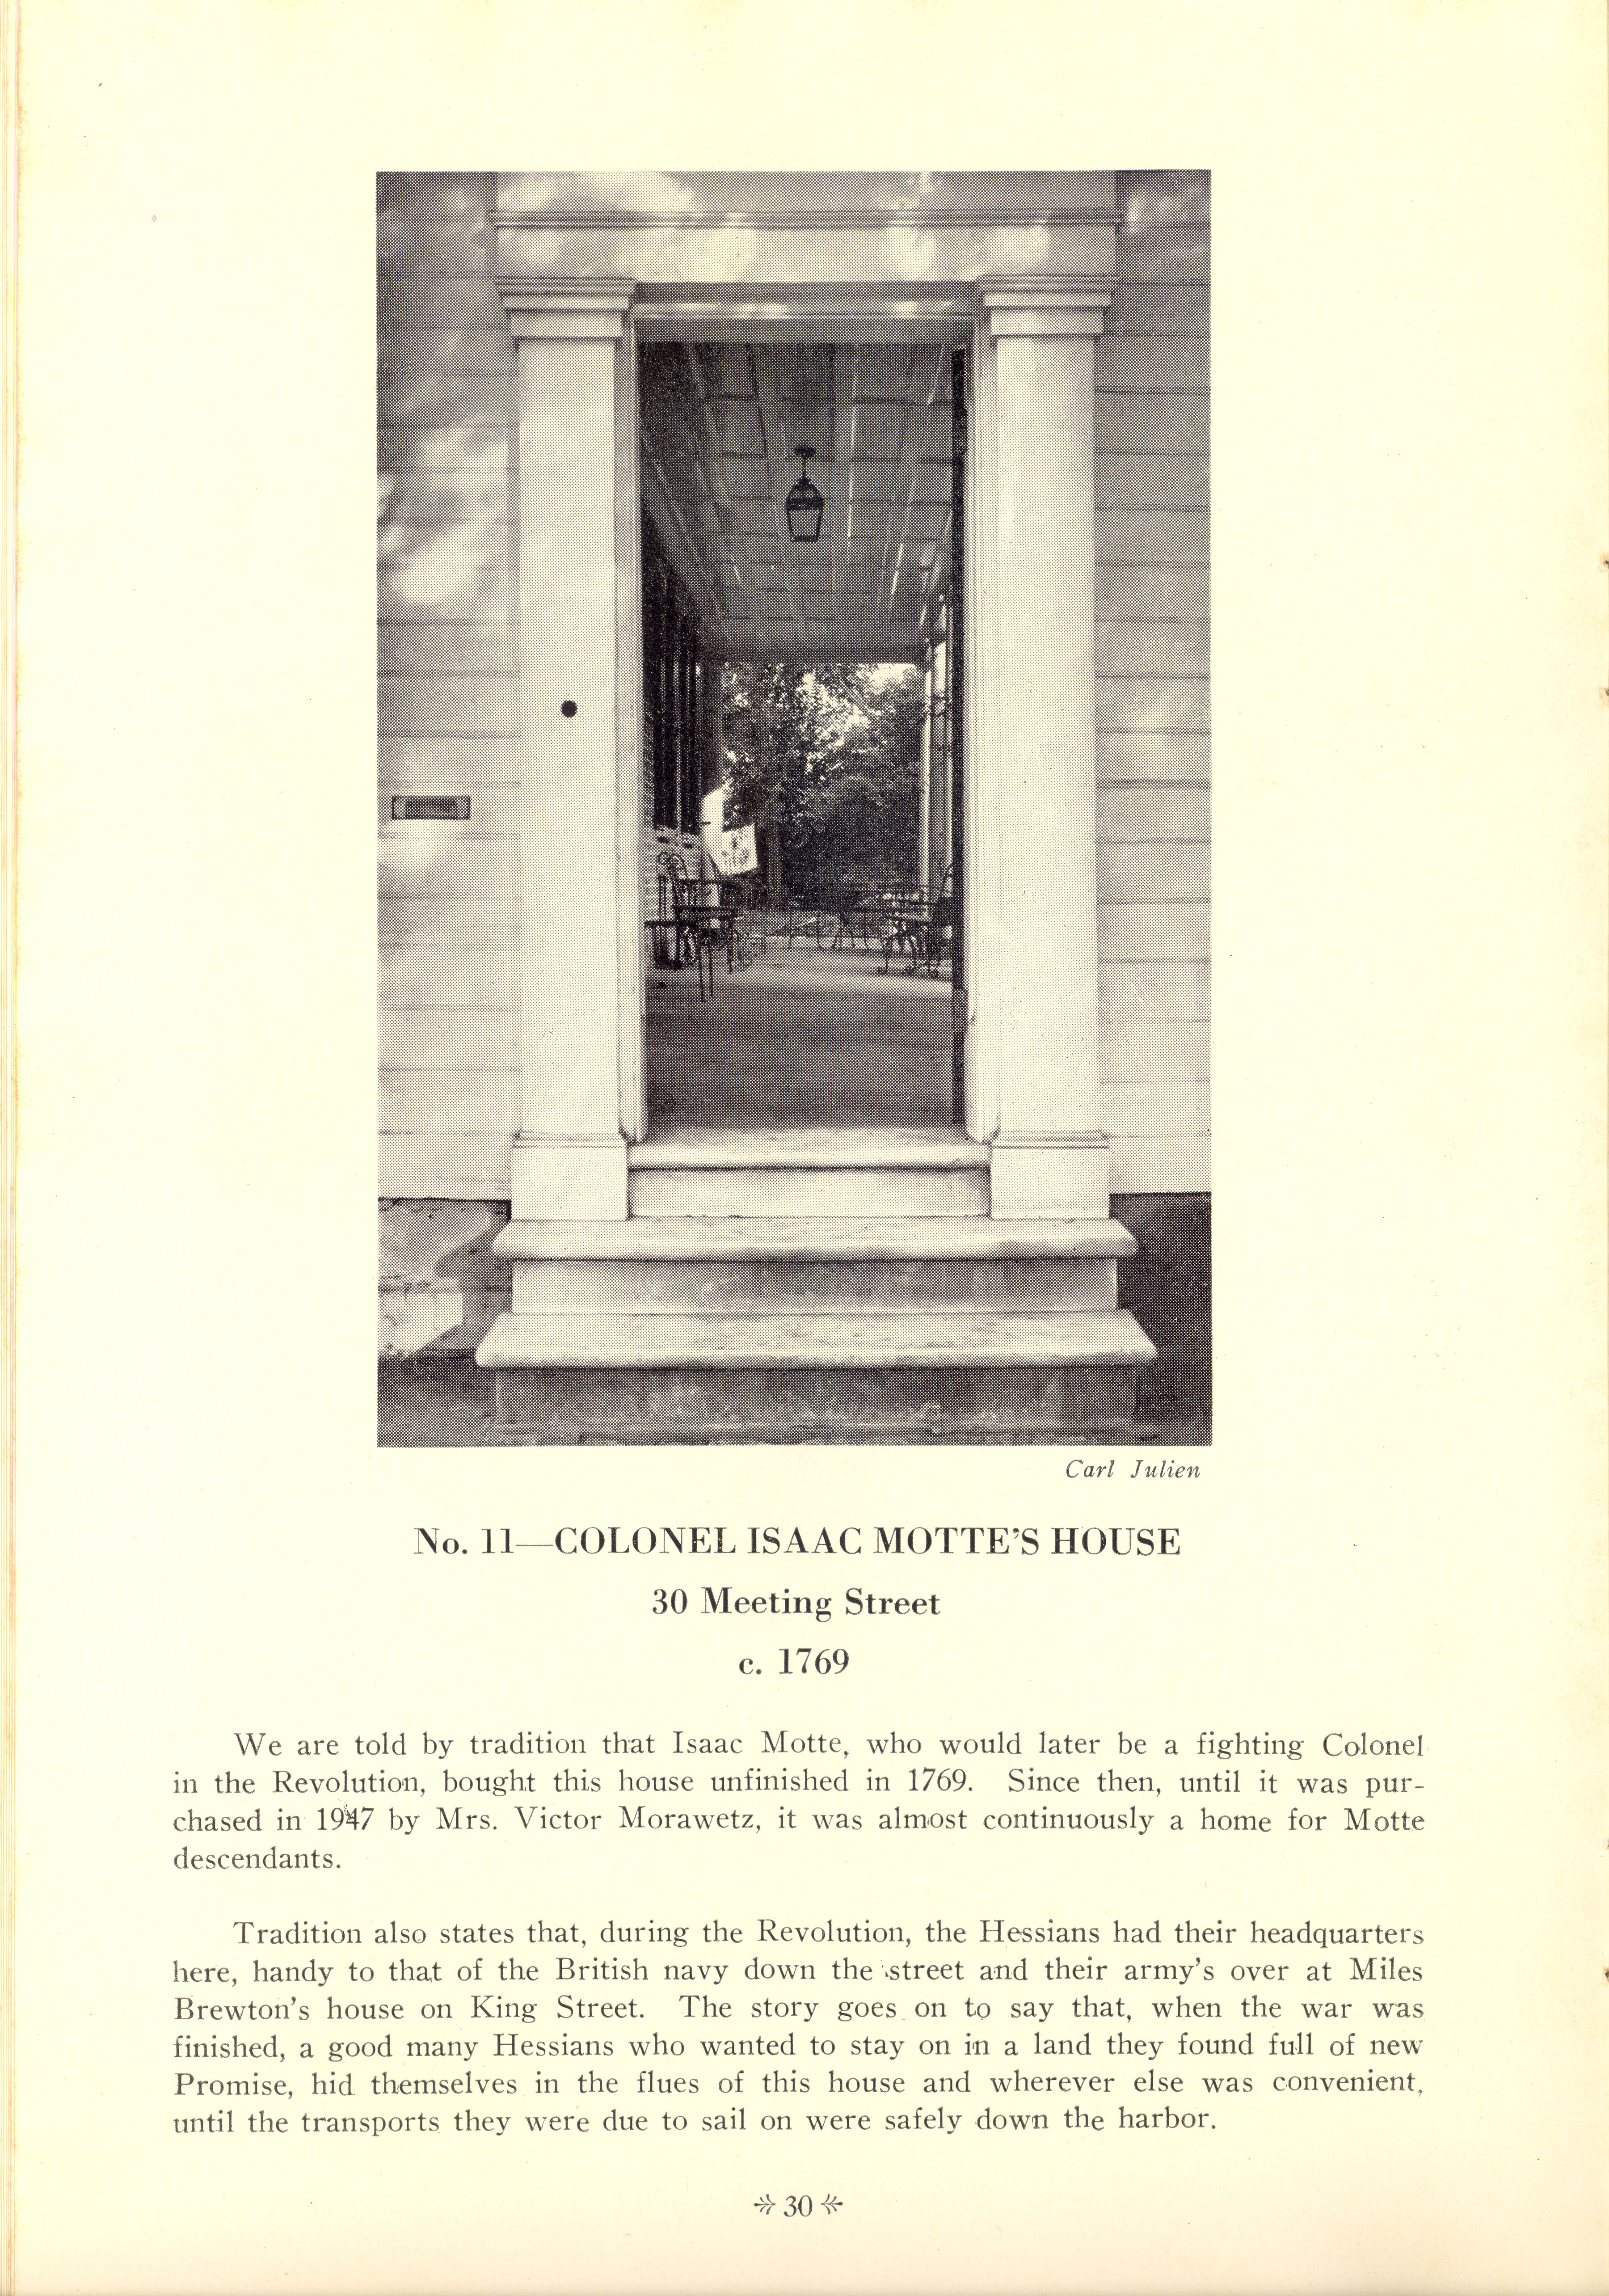 Page 30:  No. 11 - Colonel Isaac Motte's House, 30 Meeting Street, c. 1769